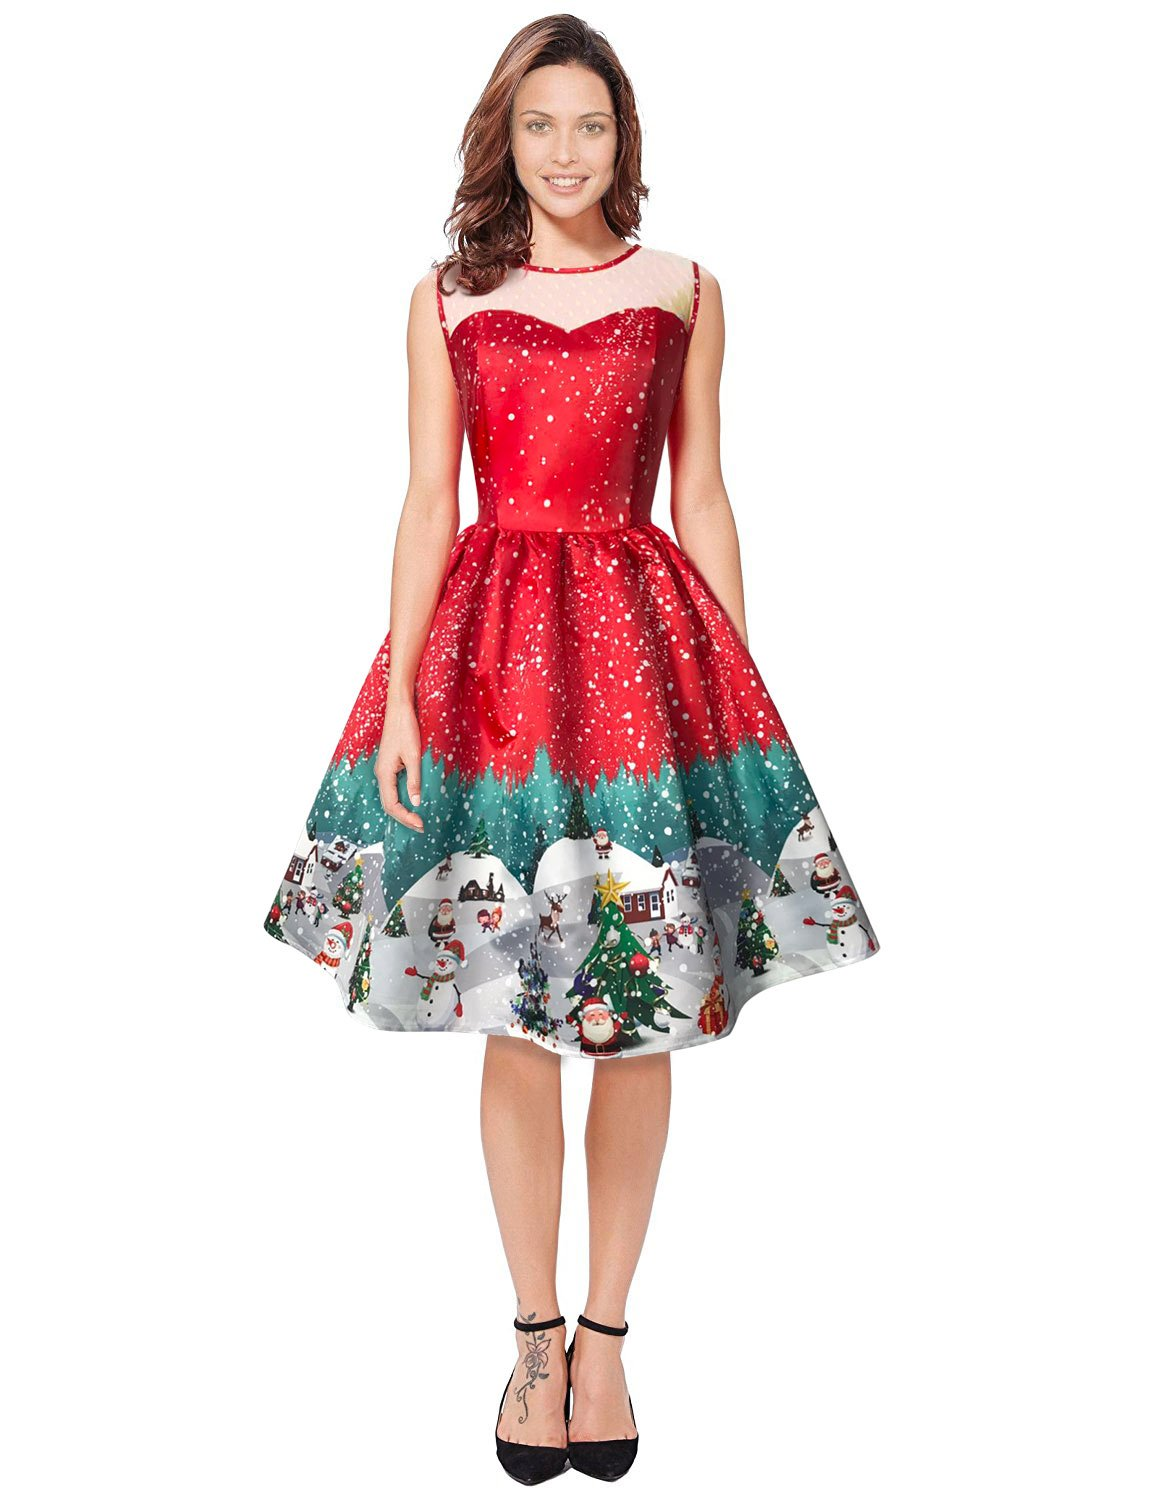 Womens Christmas Gifts Santa Claus Print Lace Retro Round Neck Sleeveless Swing Party Dresses, Red, XX-Large